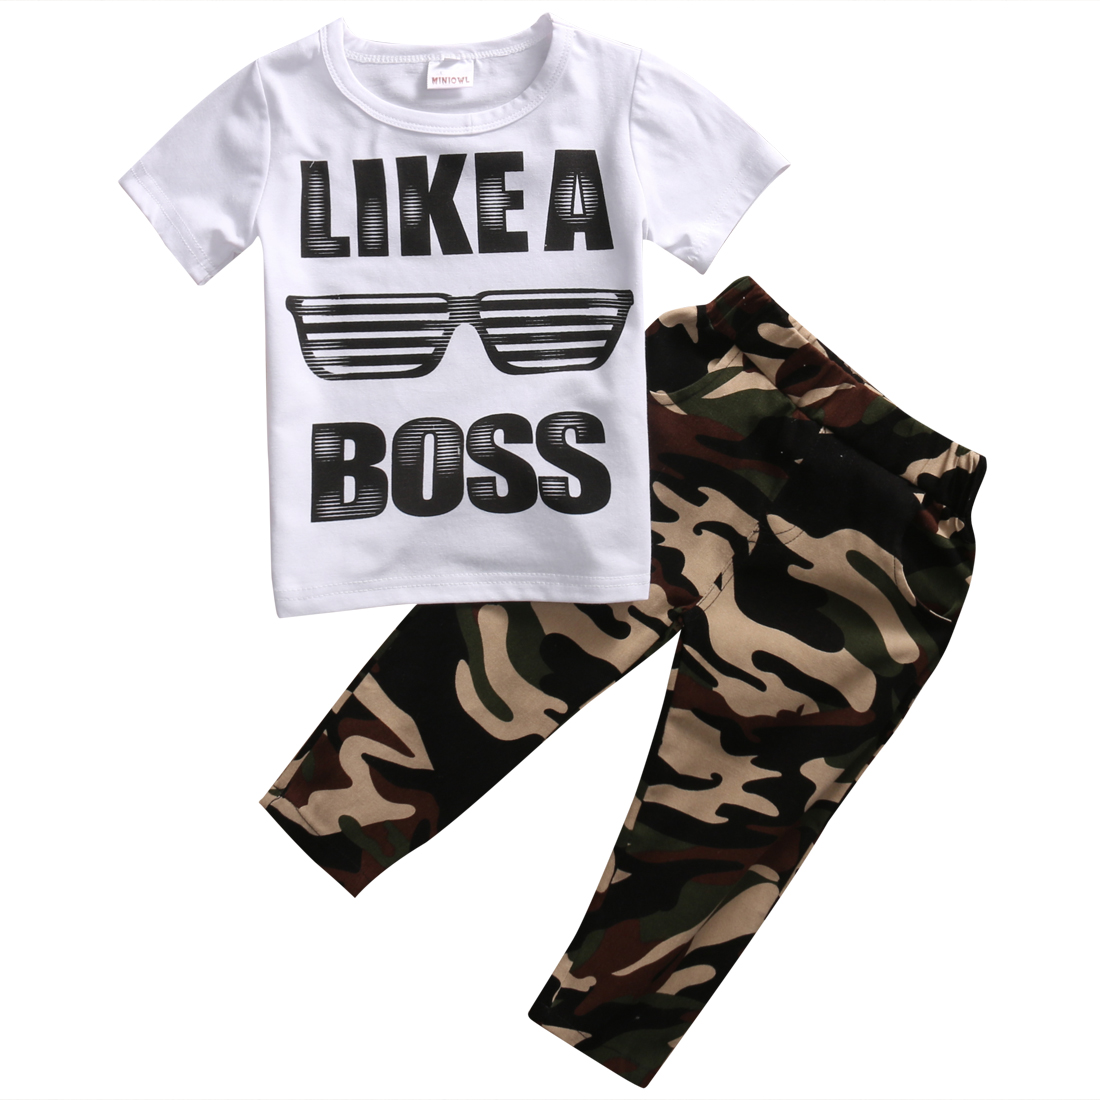 2pcs Toddler Newborn Baby Boys Clothes Printed Short Sleeves T-shirt Tops+Camouflage Pants Outfits Set newborn baby kids boys tops cool letter printing i do what i want sleeveless t shirt vest short pants 2pcs outfits set clothes